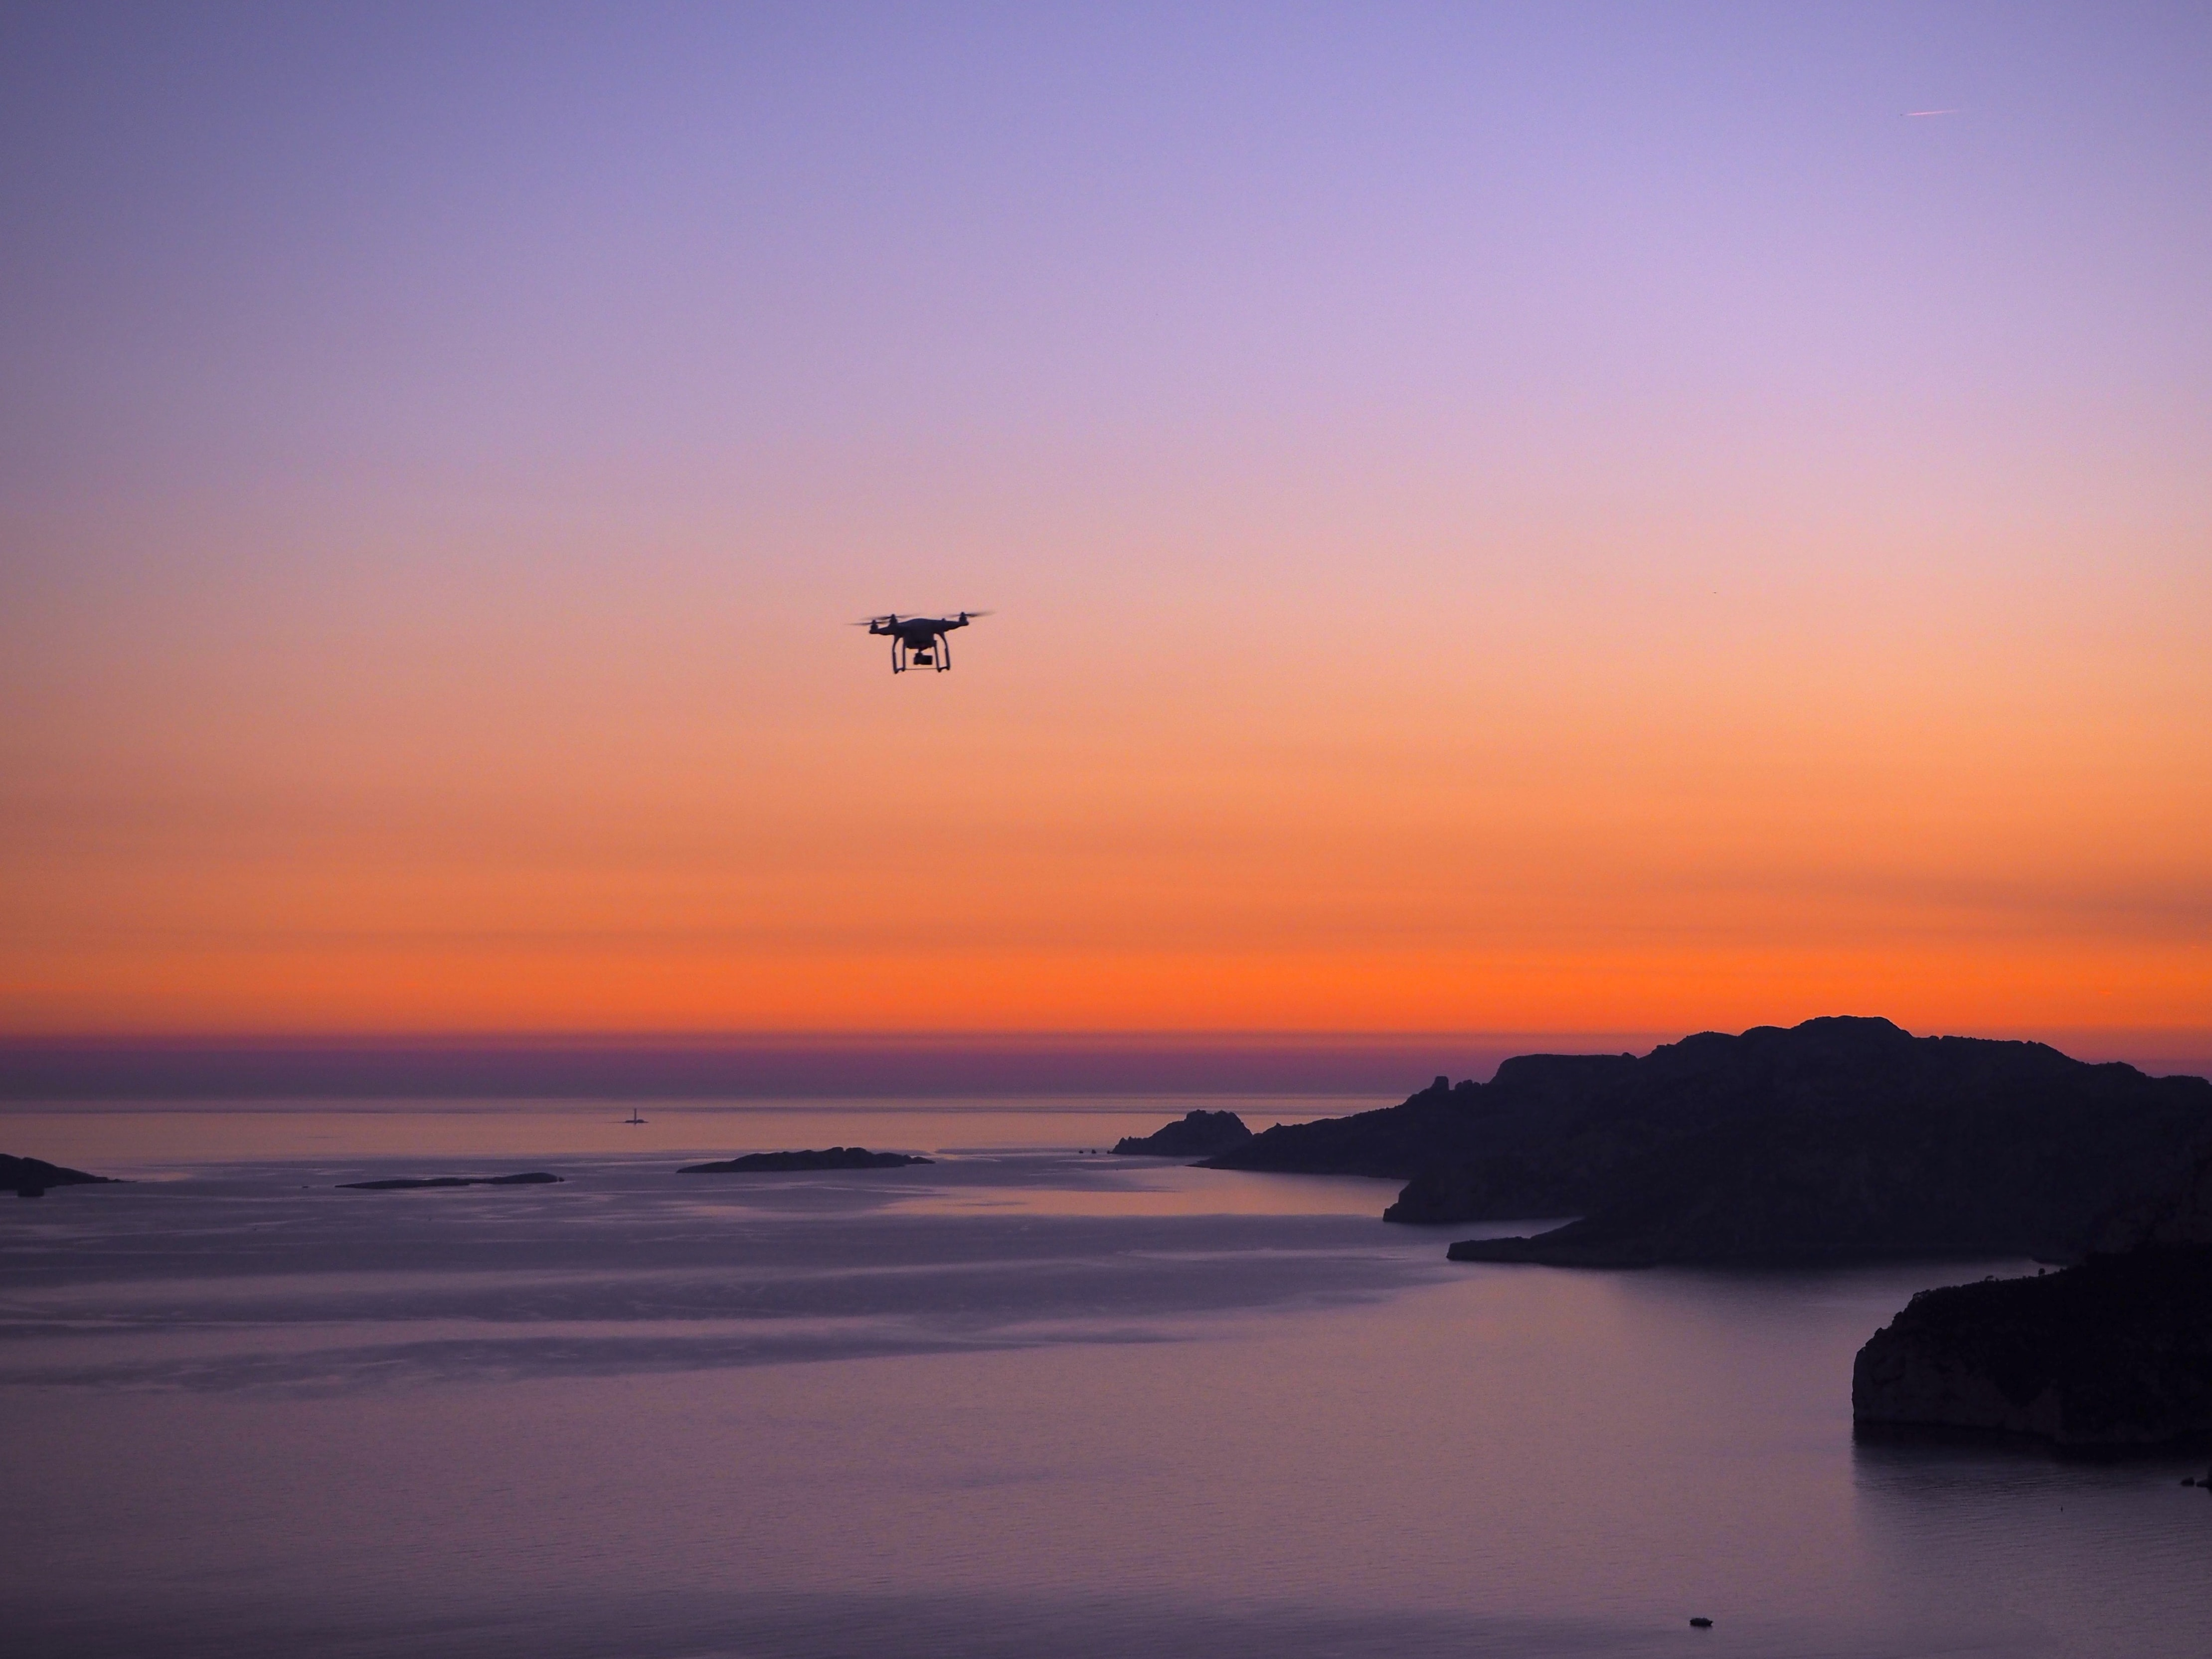 silhouette photo of drone on seashore